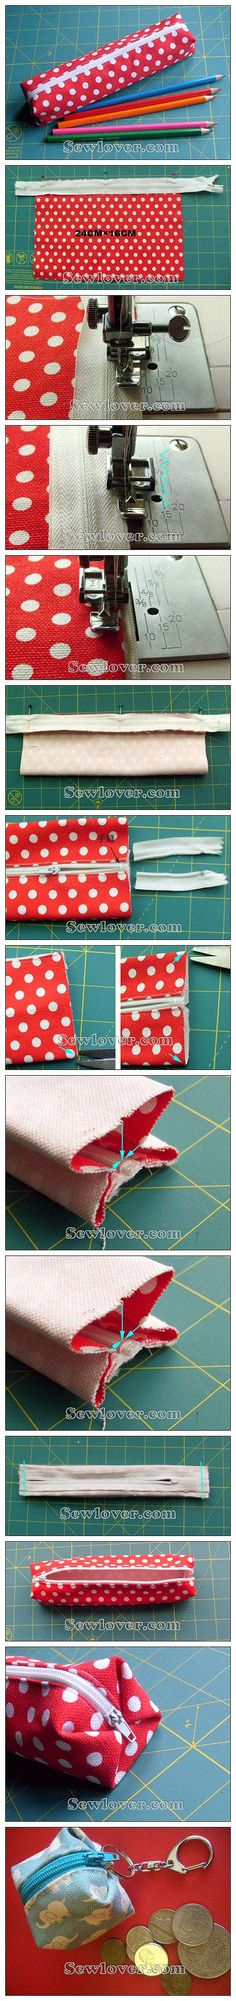 Tutorial for a pencil case